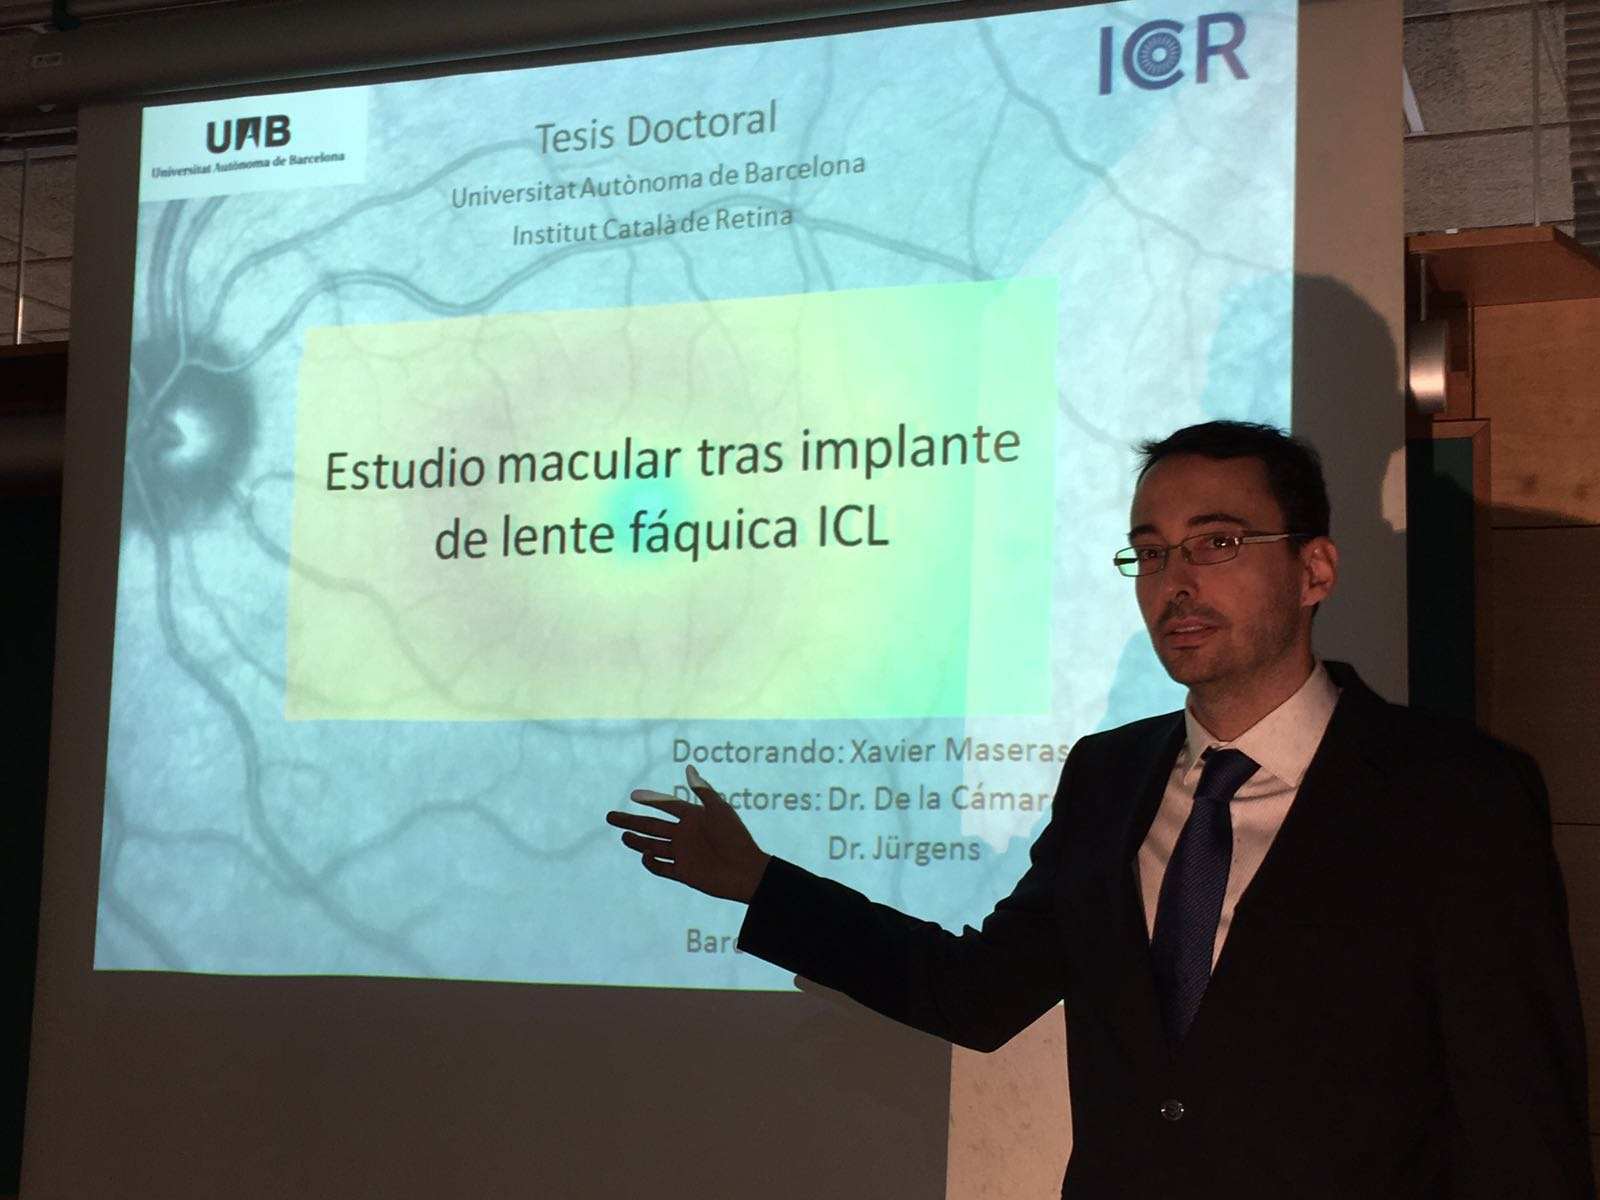 Dr. Xavier Maseras presents his doctoral thesis defense, a macular study after the implantation of ICL phakic lenses